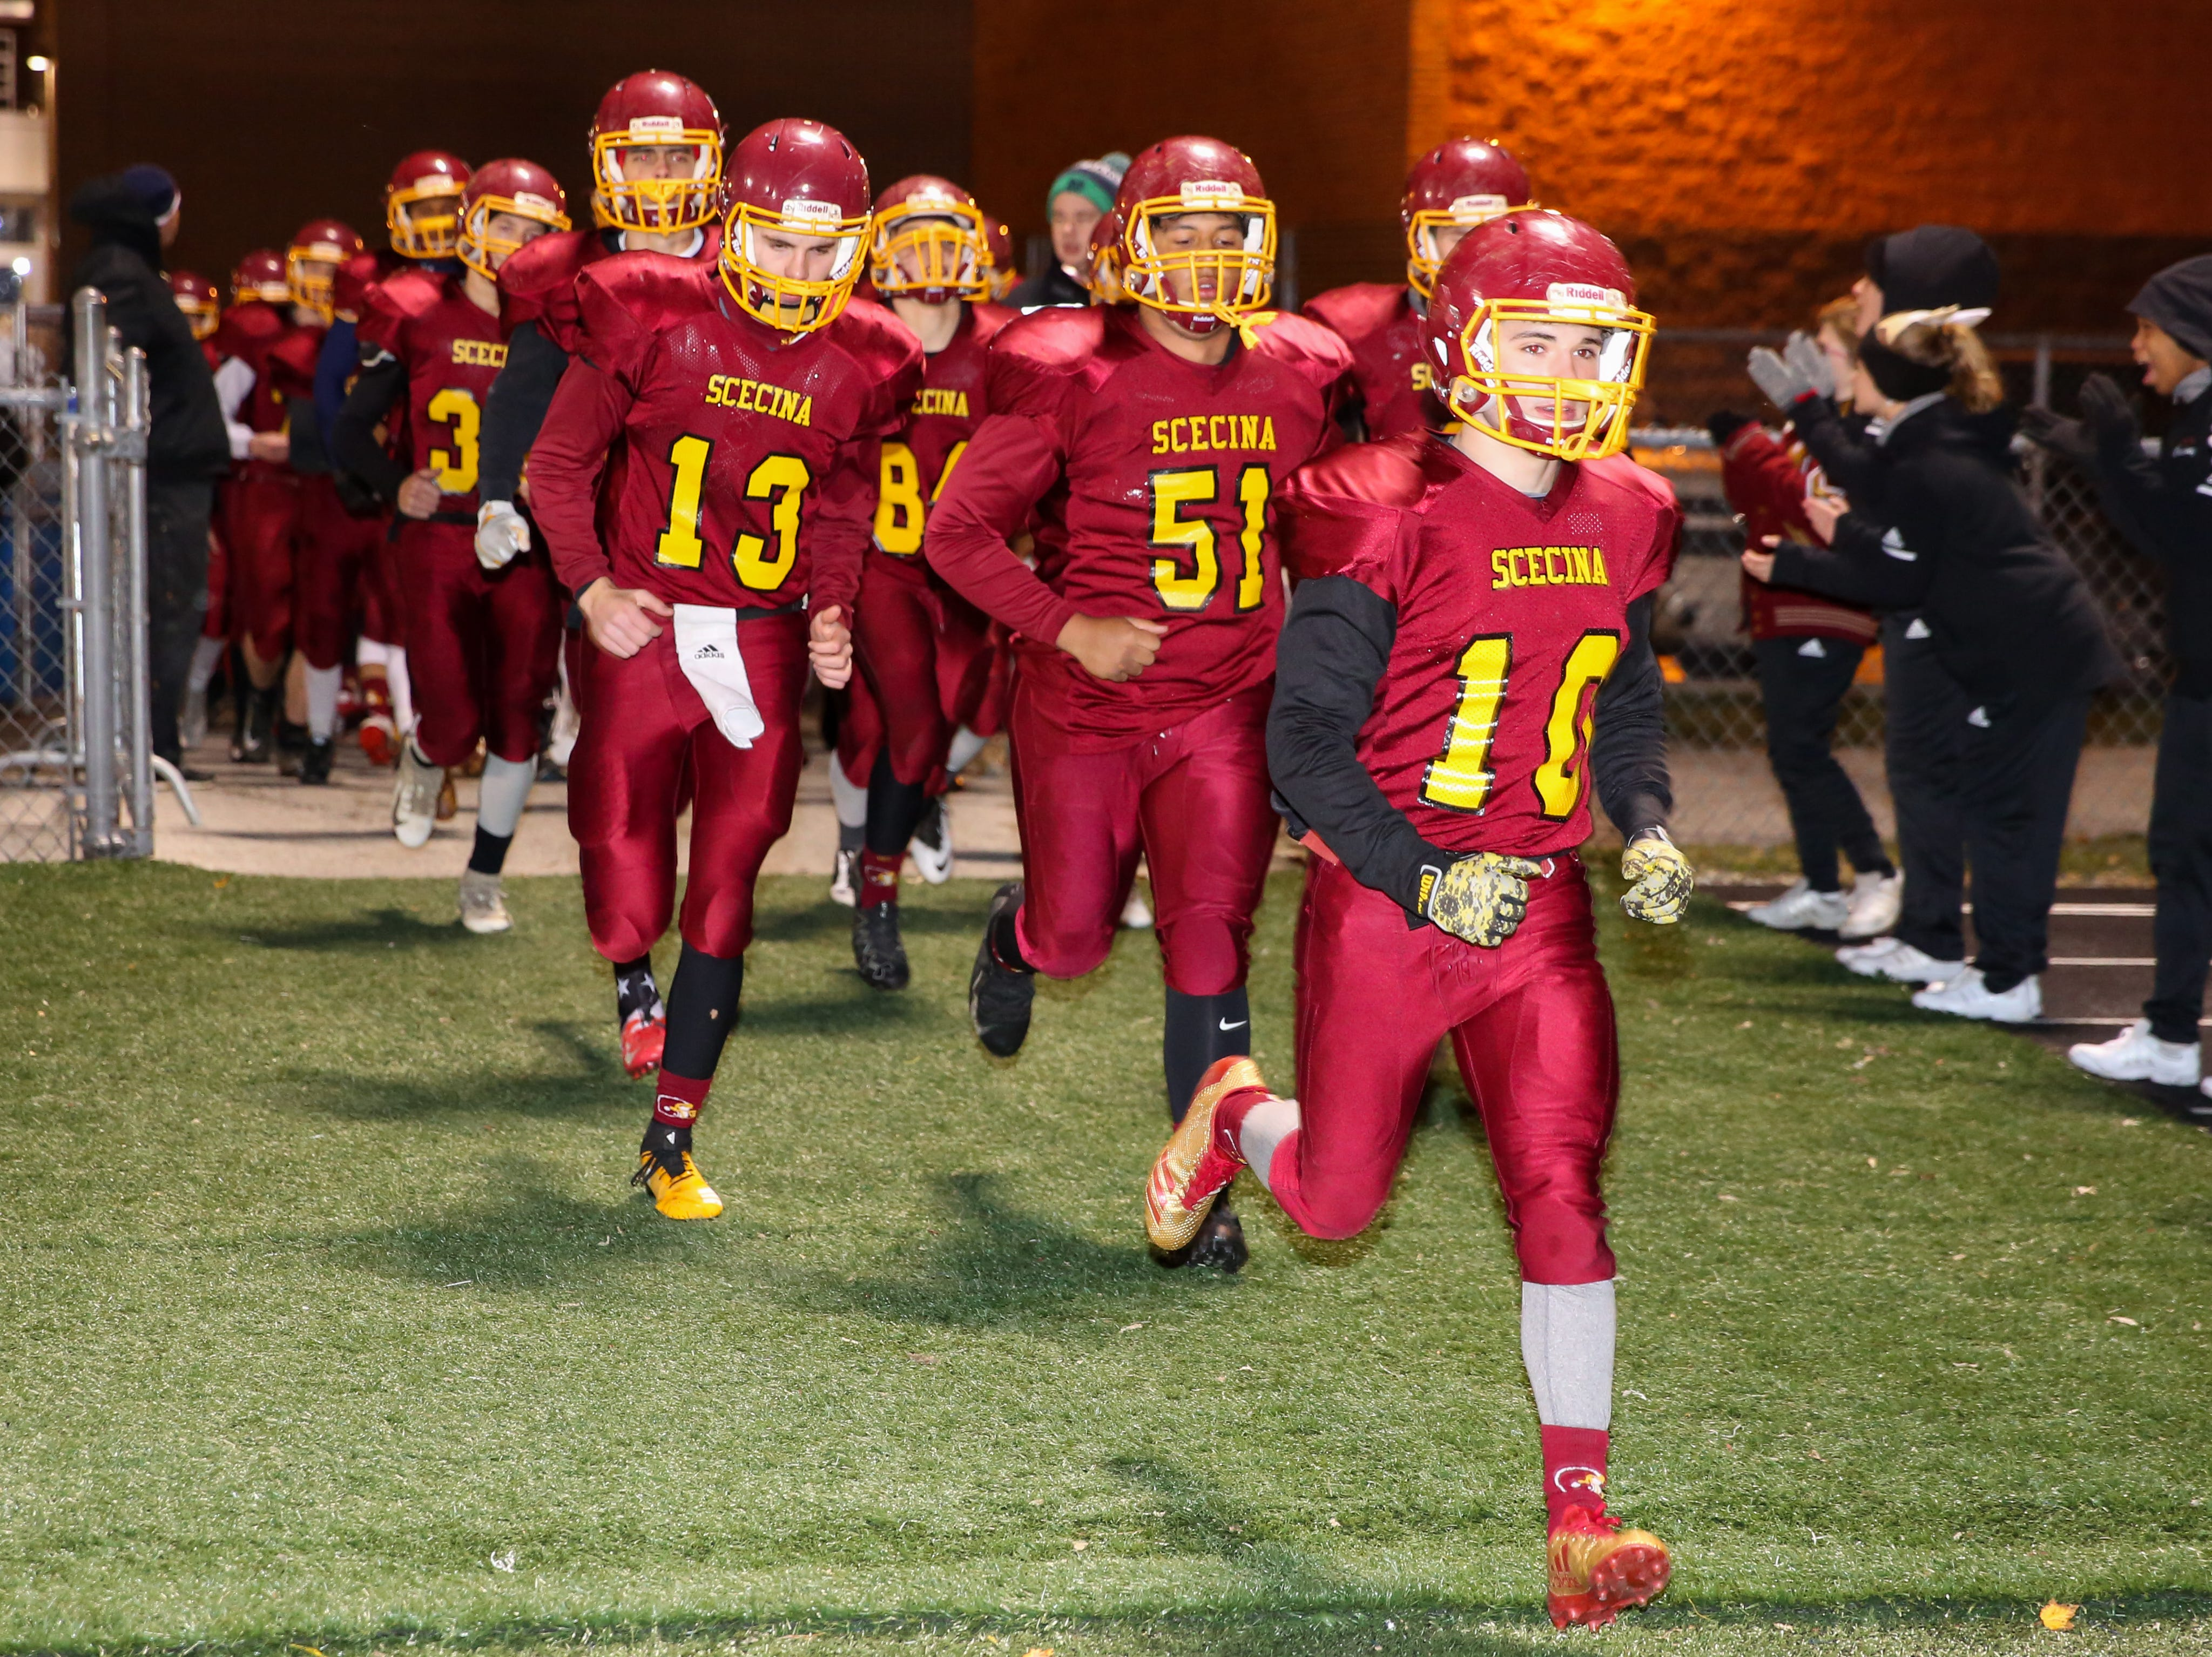 The Crusaders take the field for the start of Indianapolis Scecina vs Western Boone High School varsity football in the Class 2A Regional Championship held at Roncalli High School, Friday, November 9, 2018.